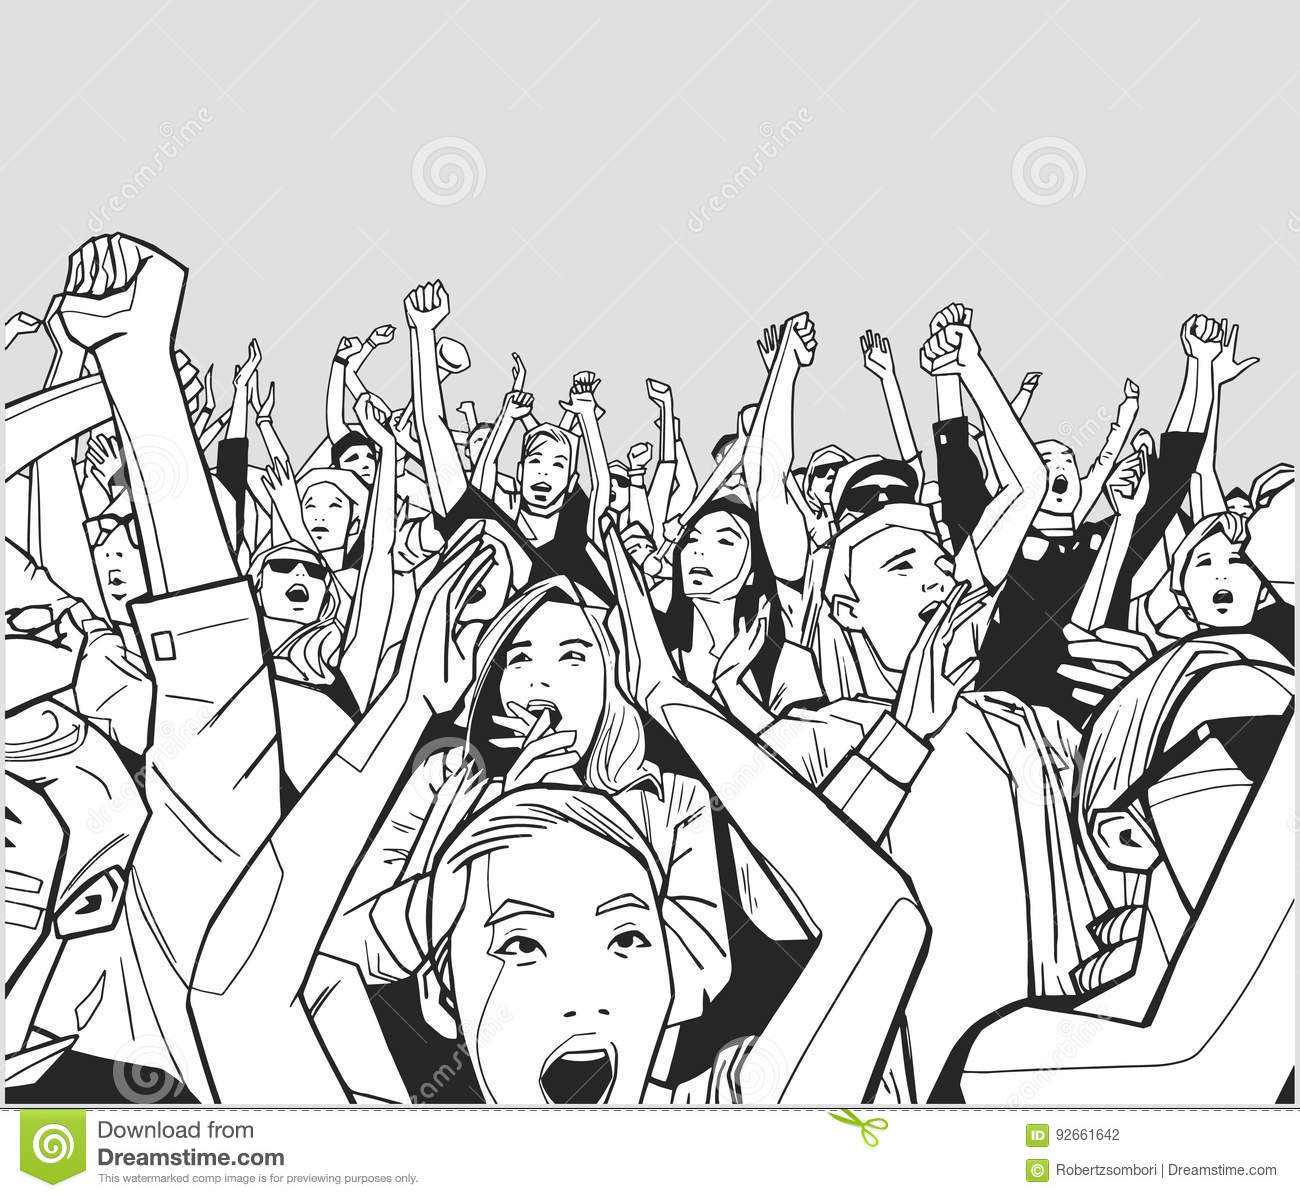 Draw House Plans Free Illustration Of Festival Crowd Cheering Stock Illustration